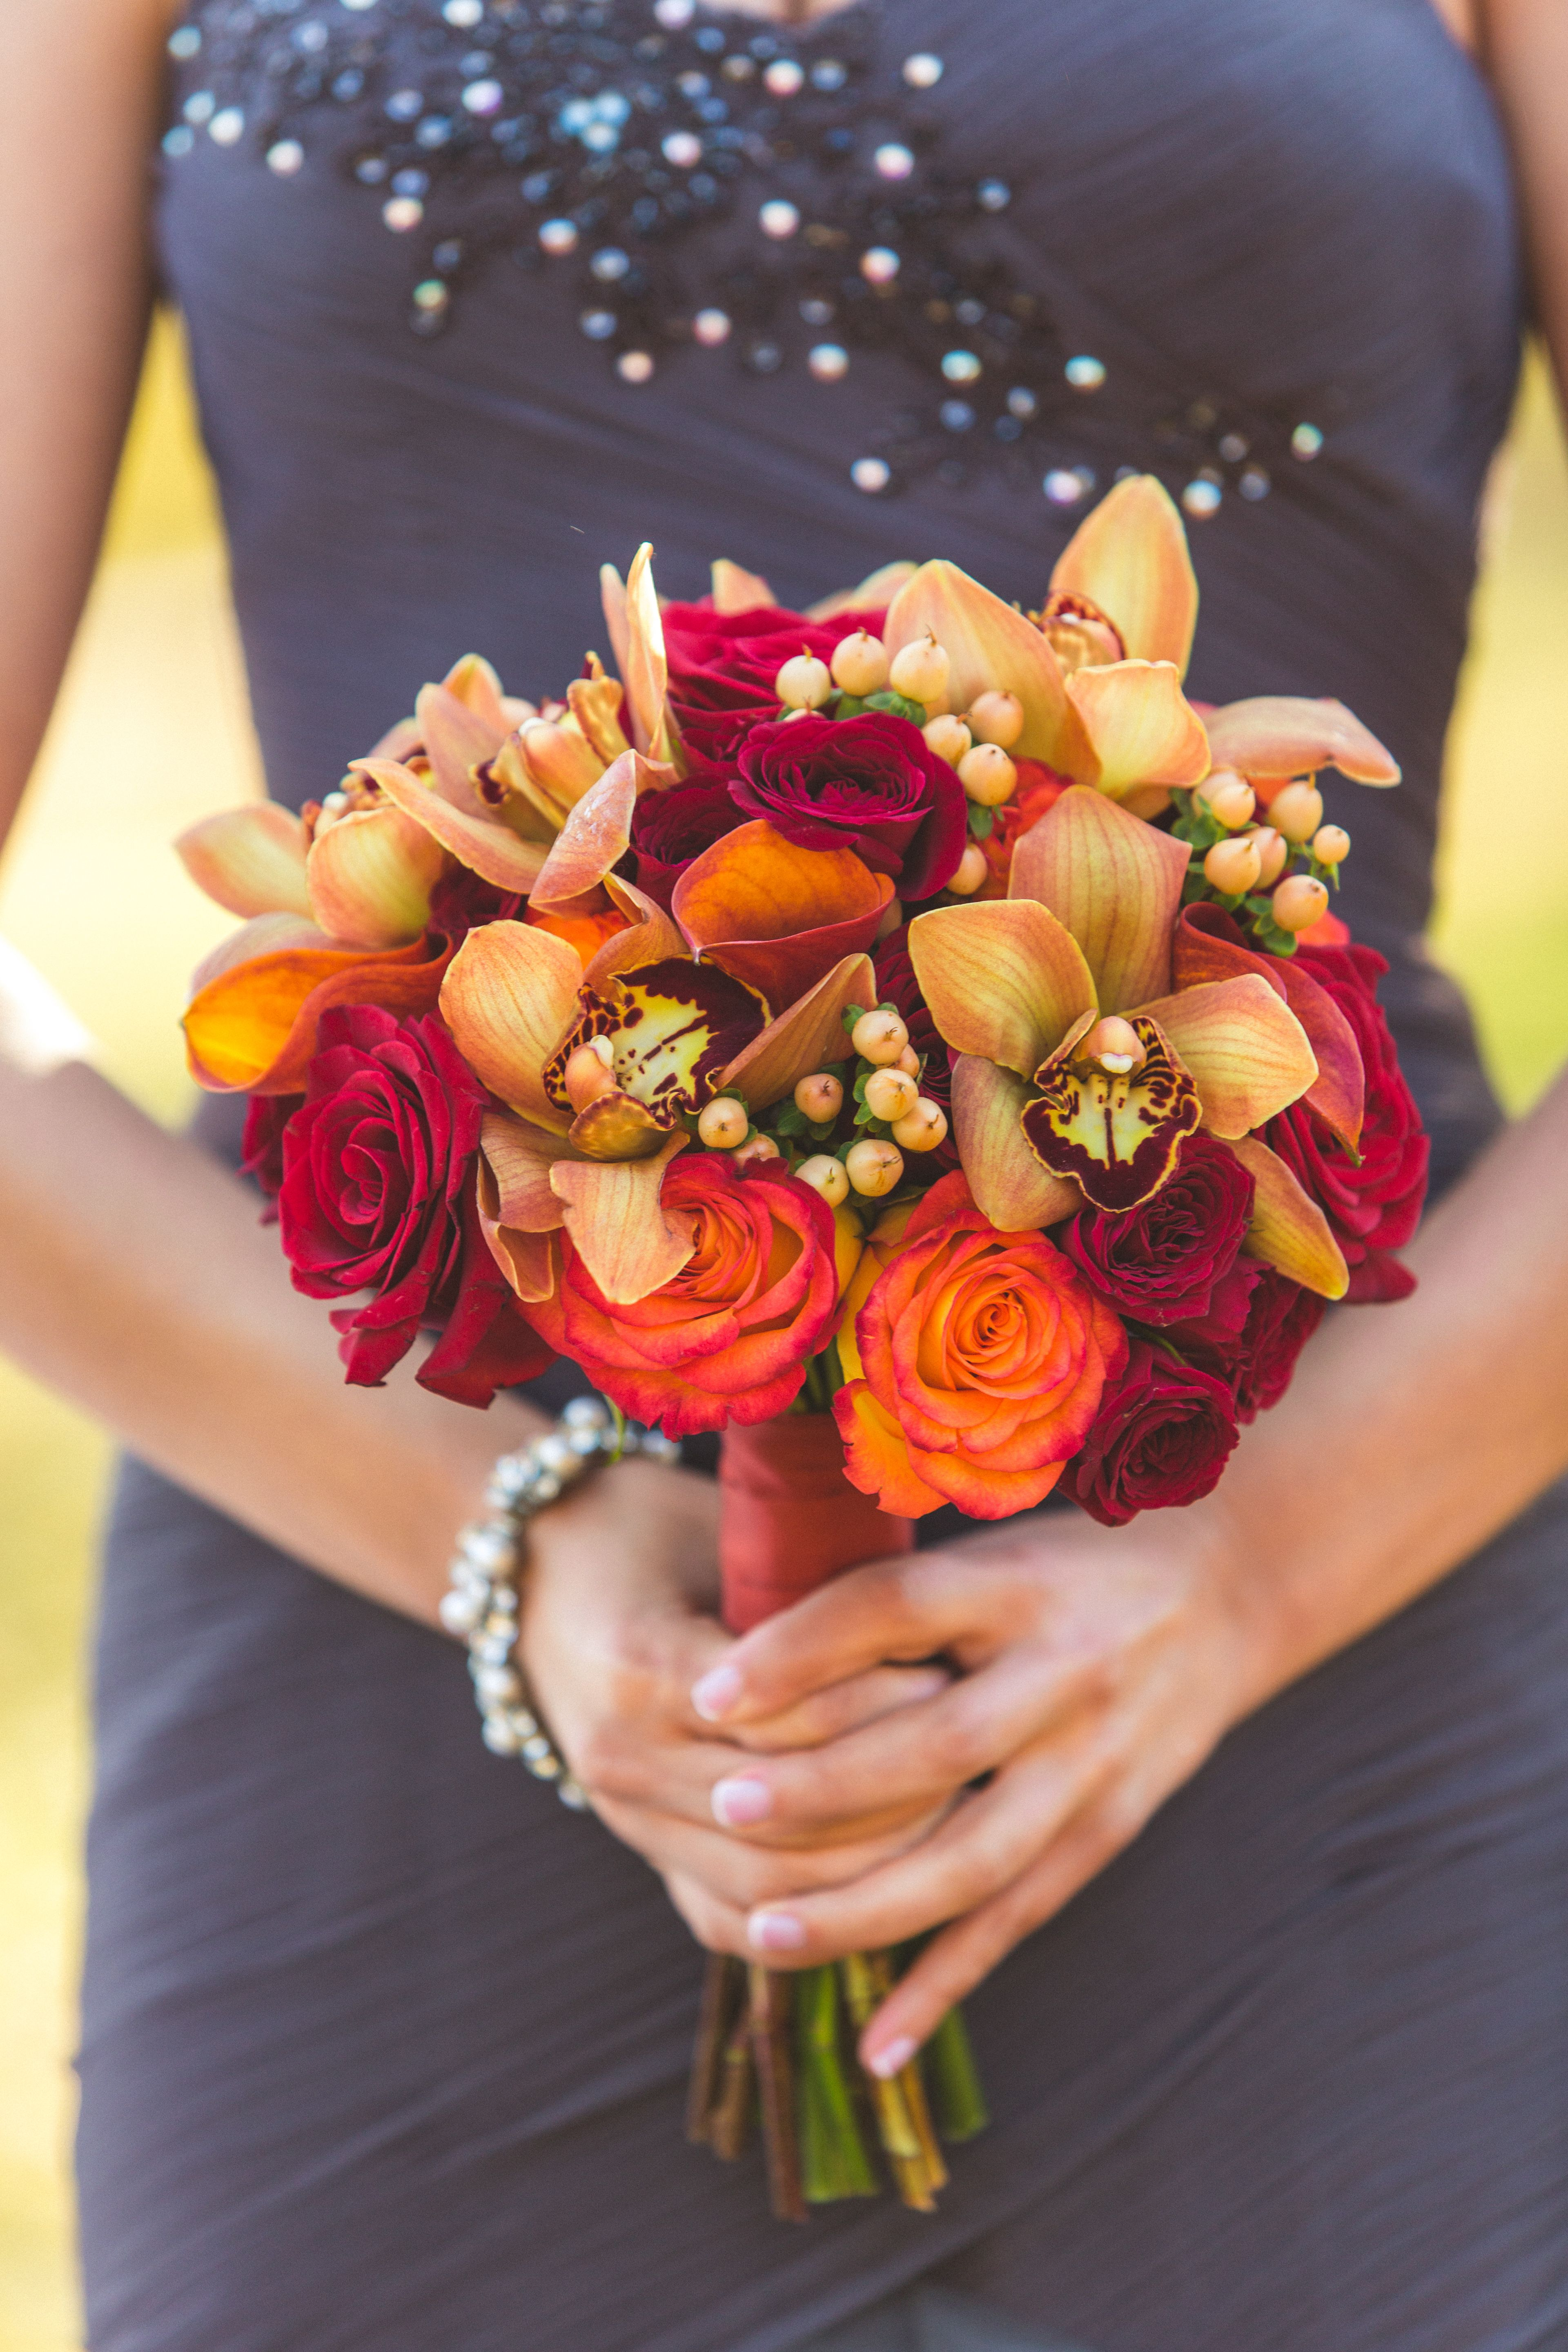 Red And Orange Rose Calla Lily And Orchid Maid Of Honor Bouquet